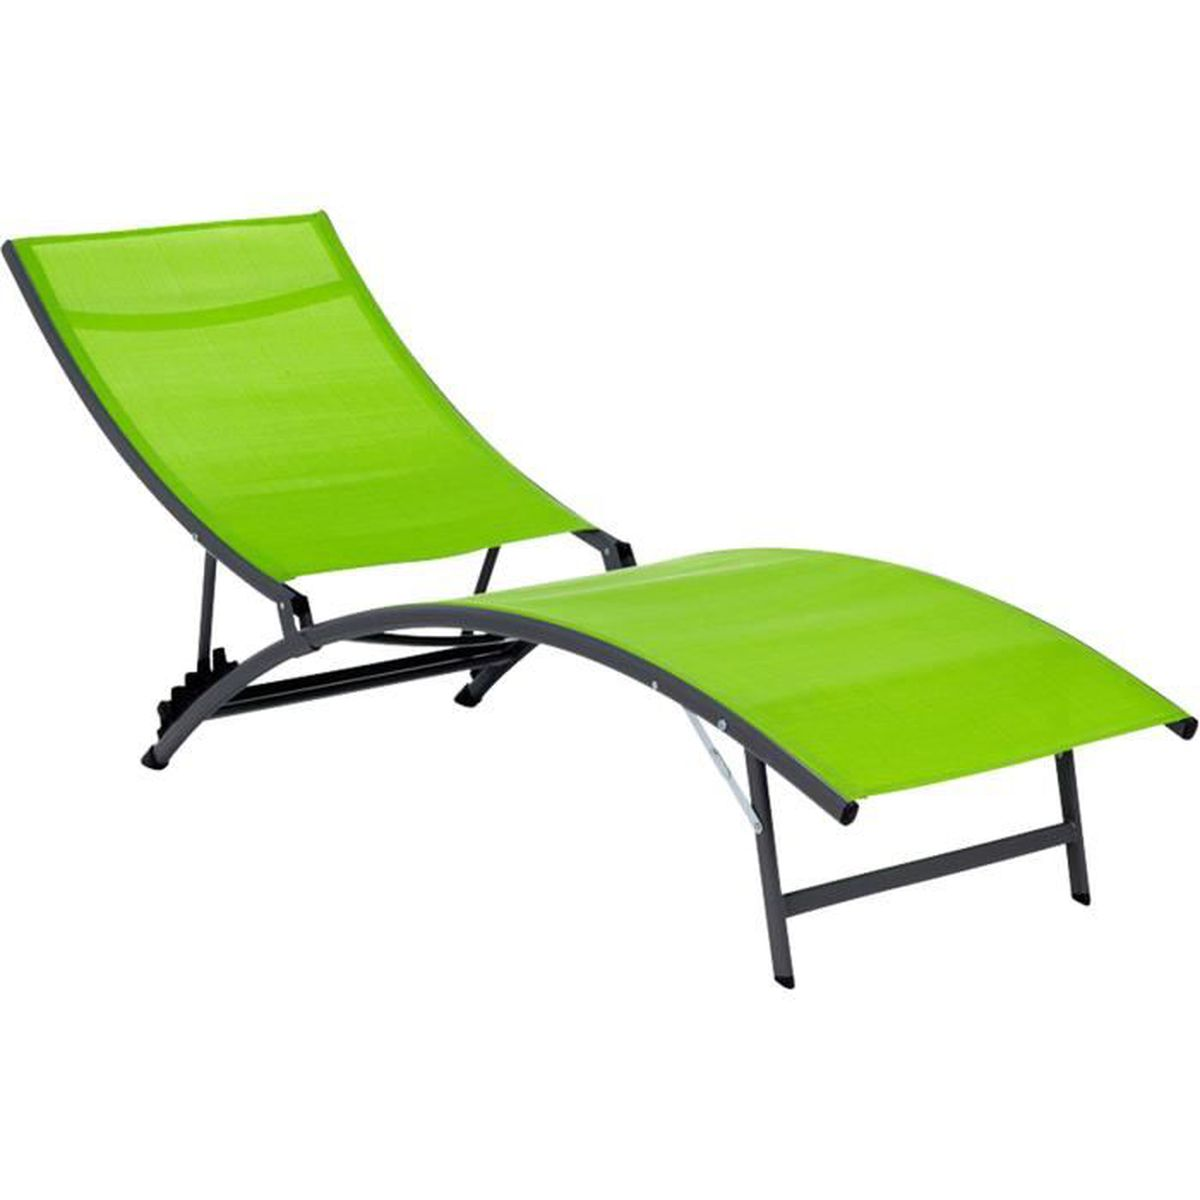 zeus transat bain de soleil vert en textil ne achat vente chaise longue zeus transat. Black Bedroom Furniture Sets. Home Design Ideas